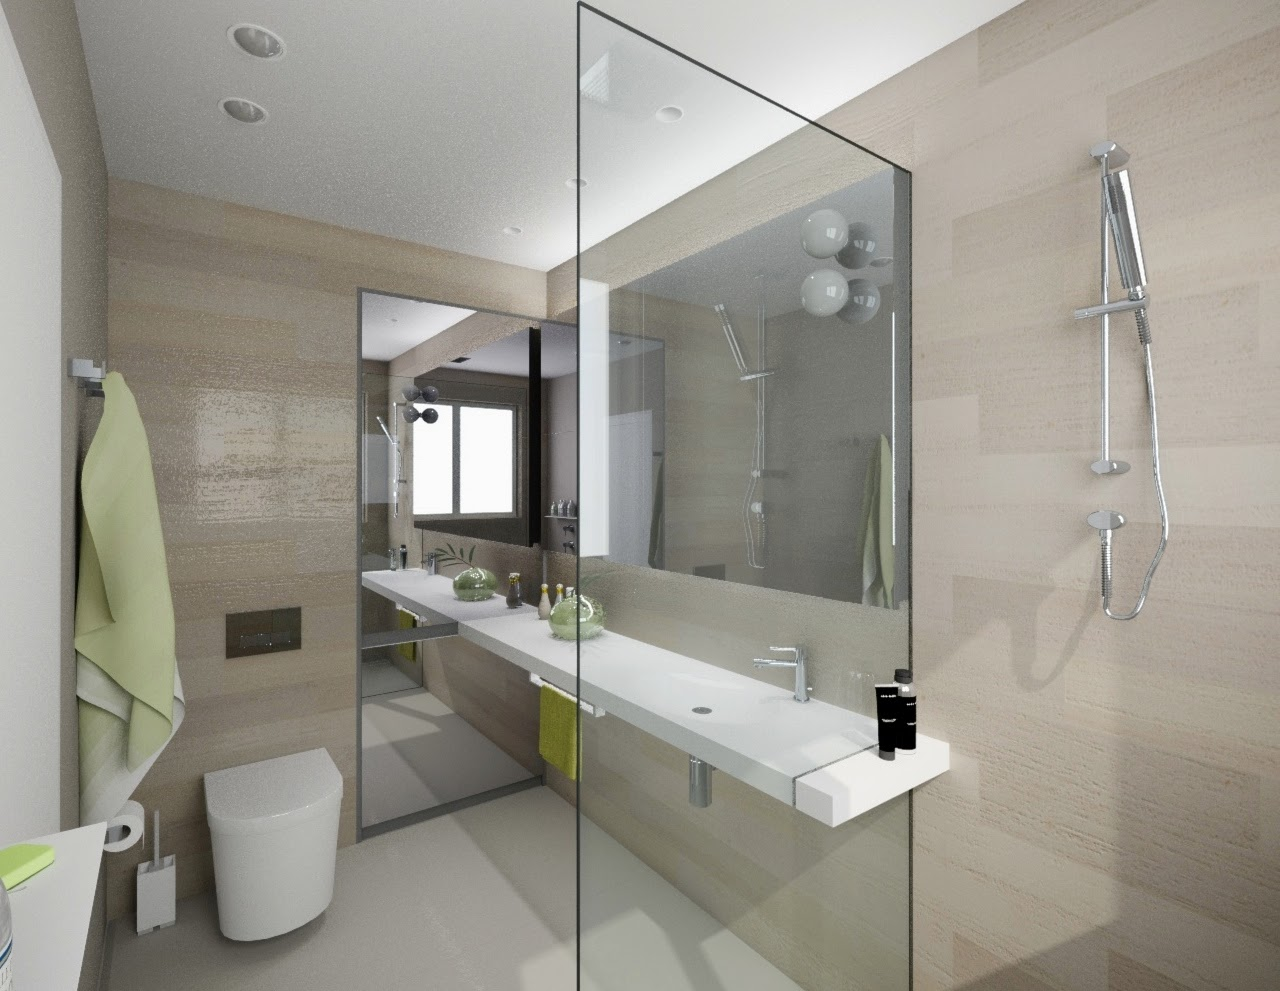 Bathroom Designs 2014: Minosa: Bringing Sexy Back